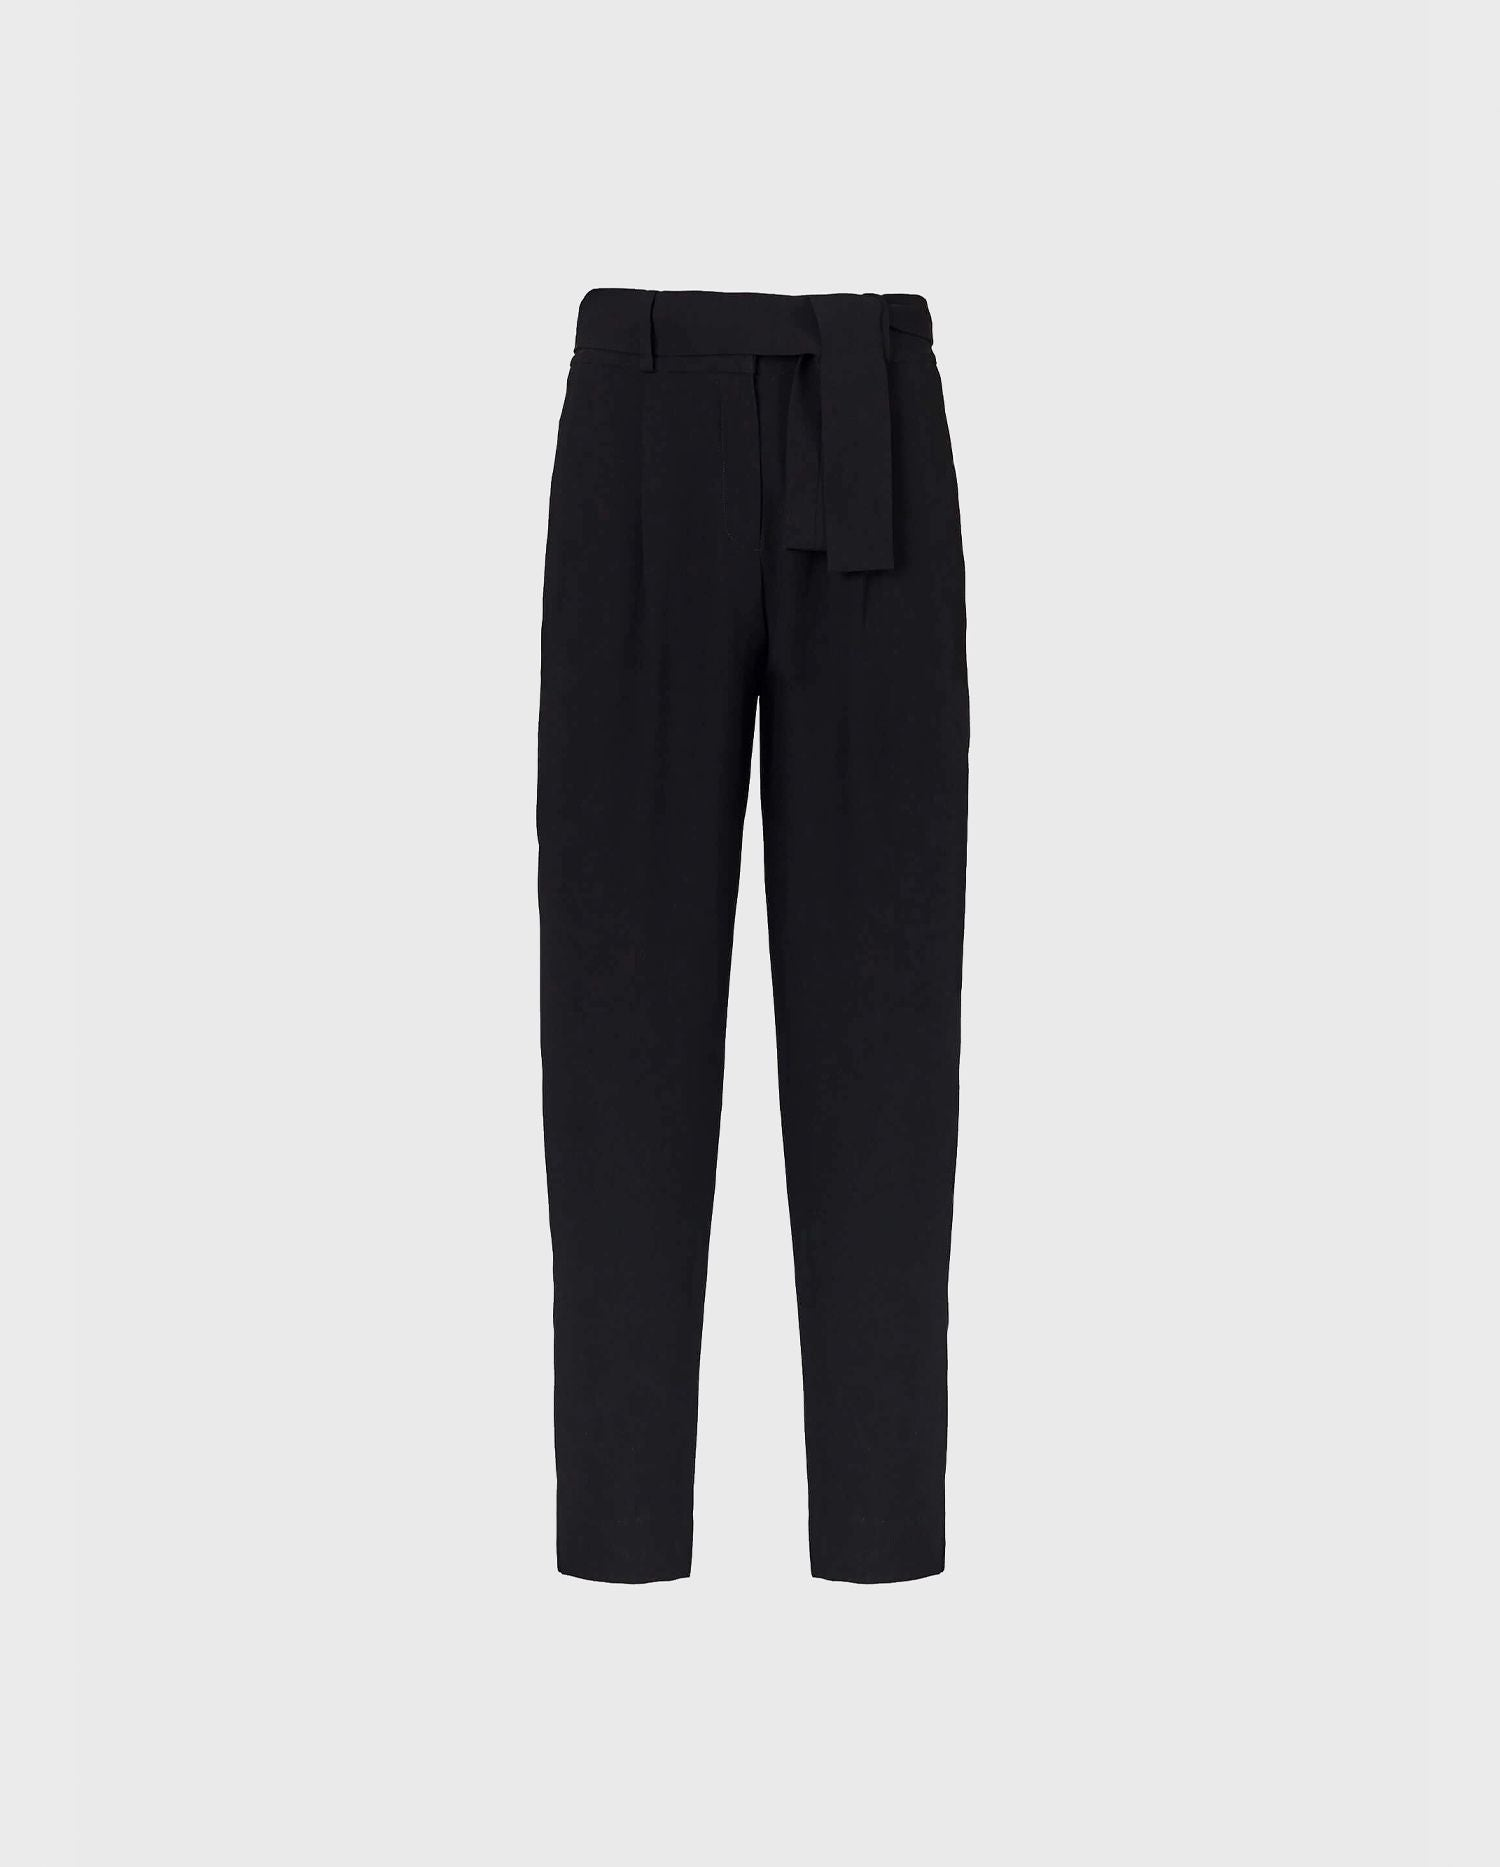 Anne Fontaine Lester Pants